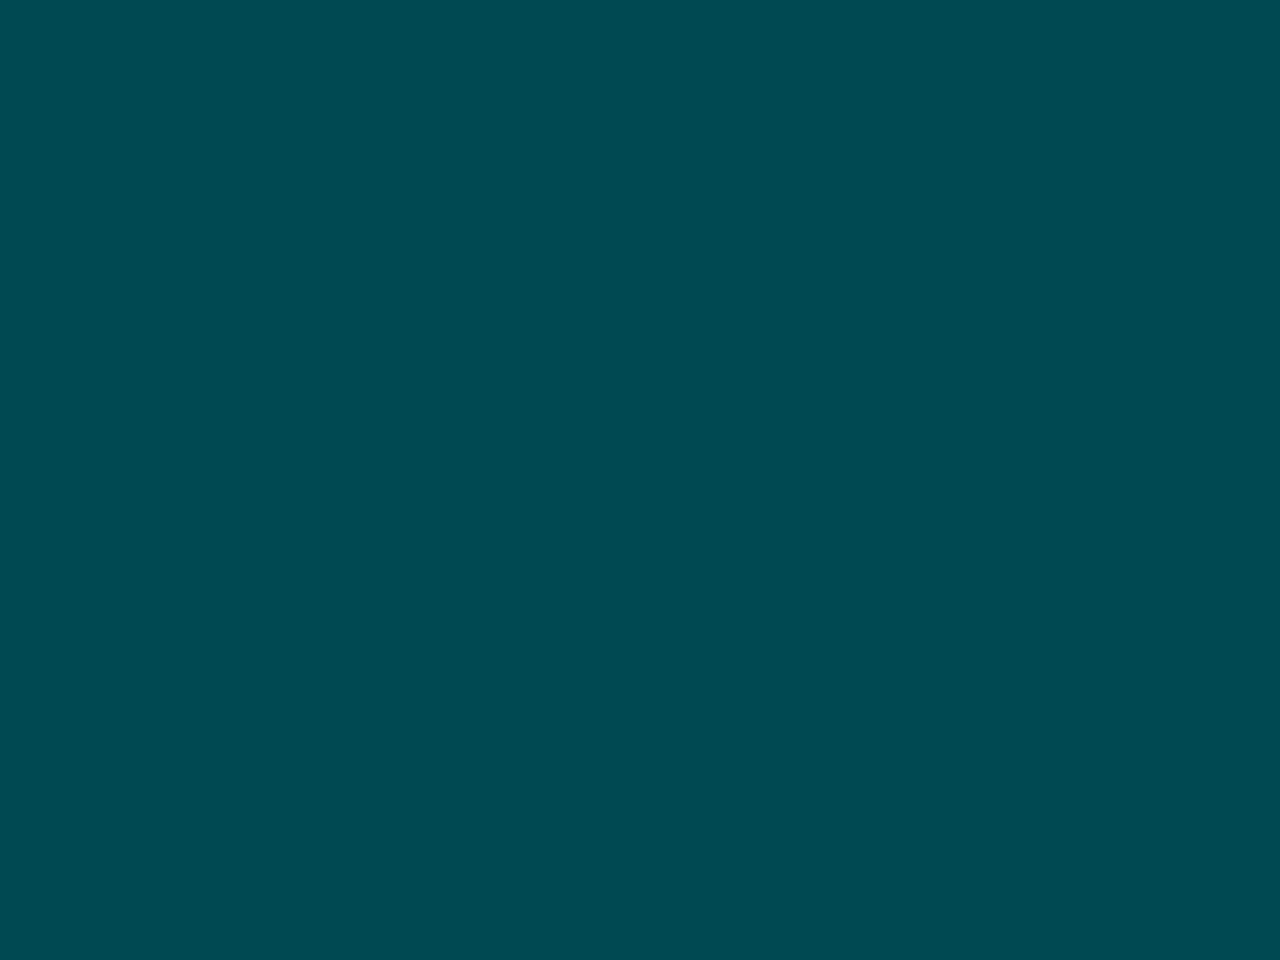 1280x960 Midnight Green Solid Color Background